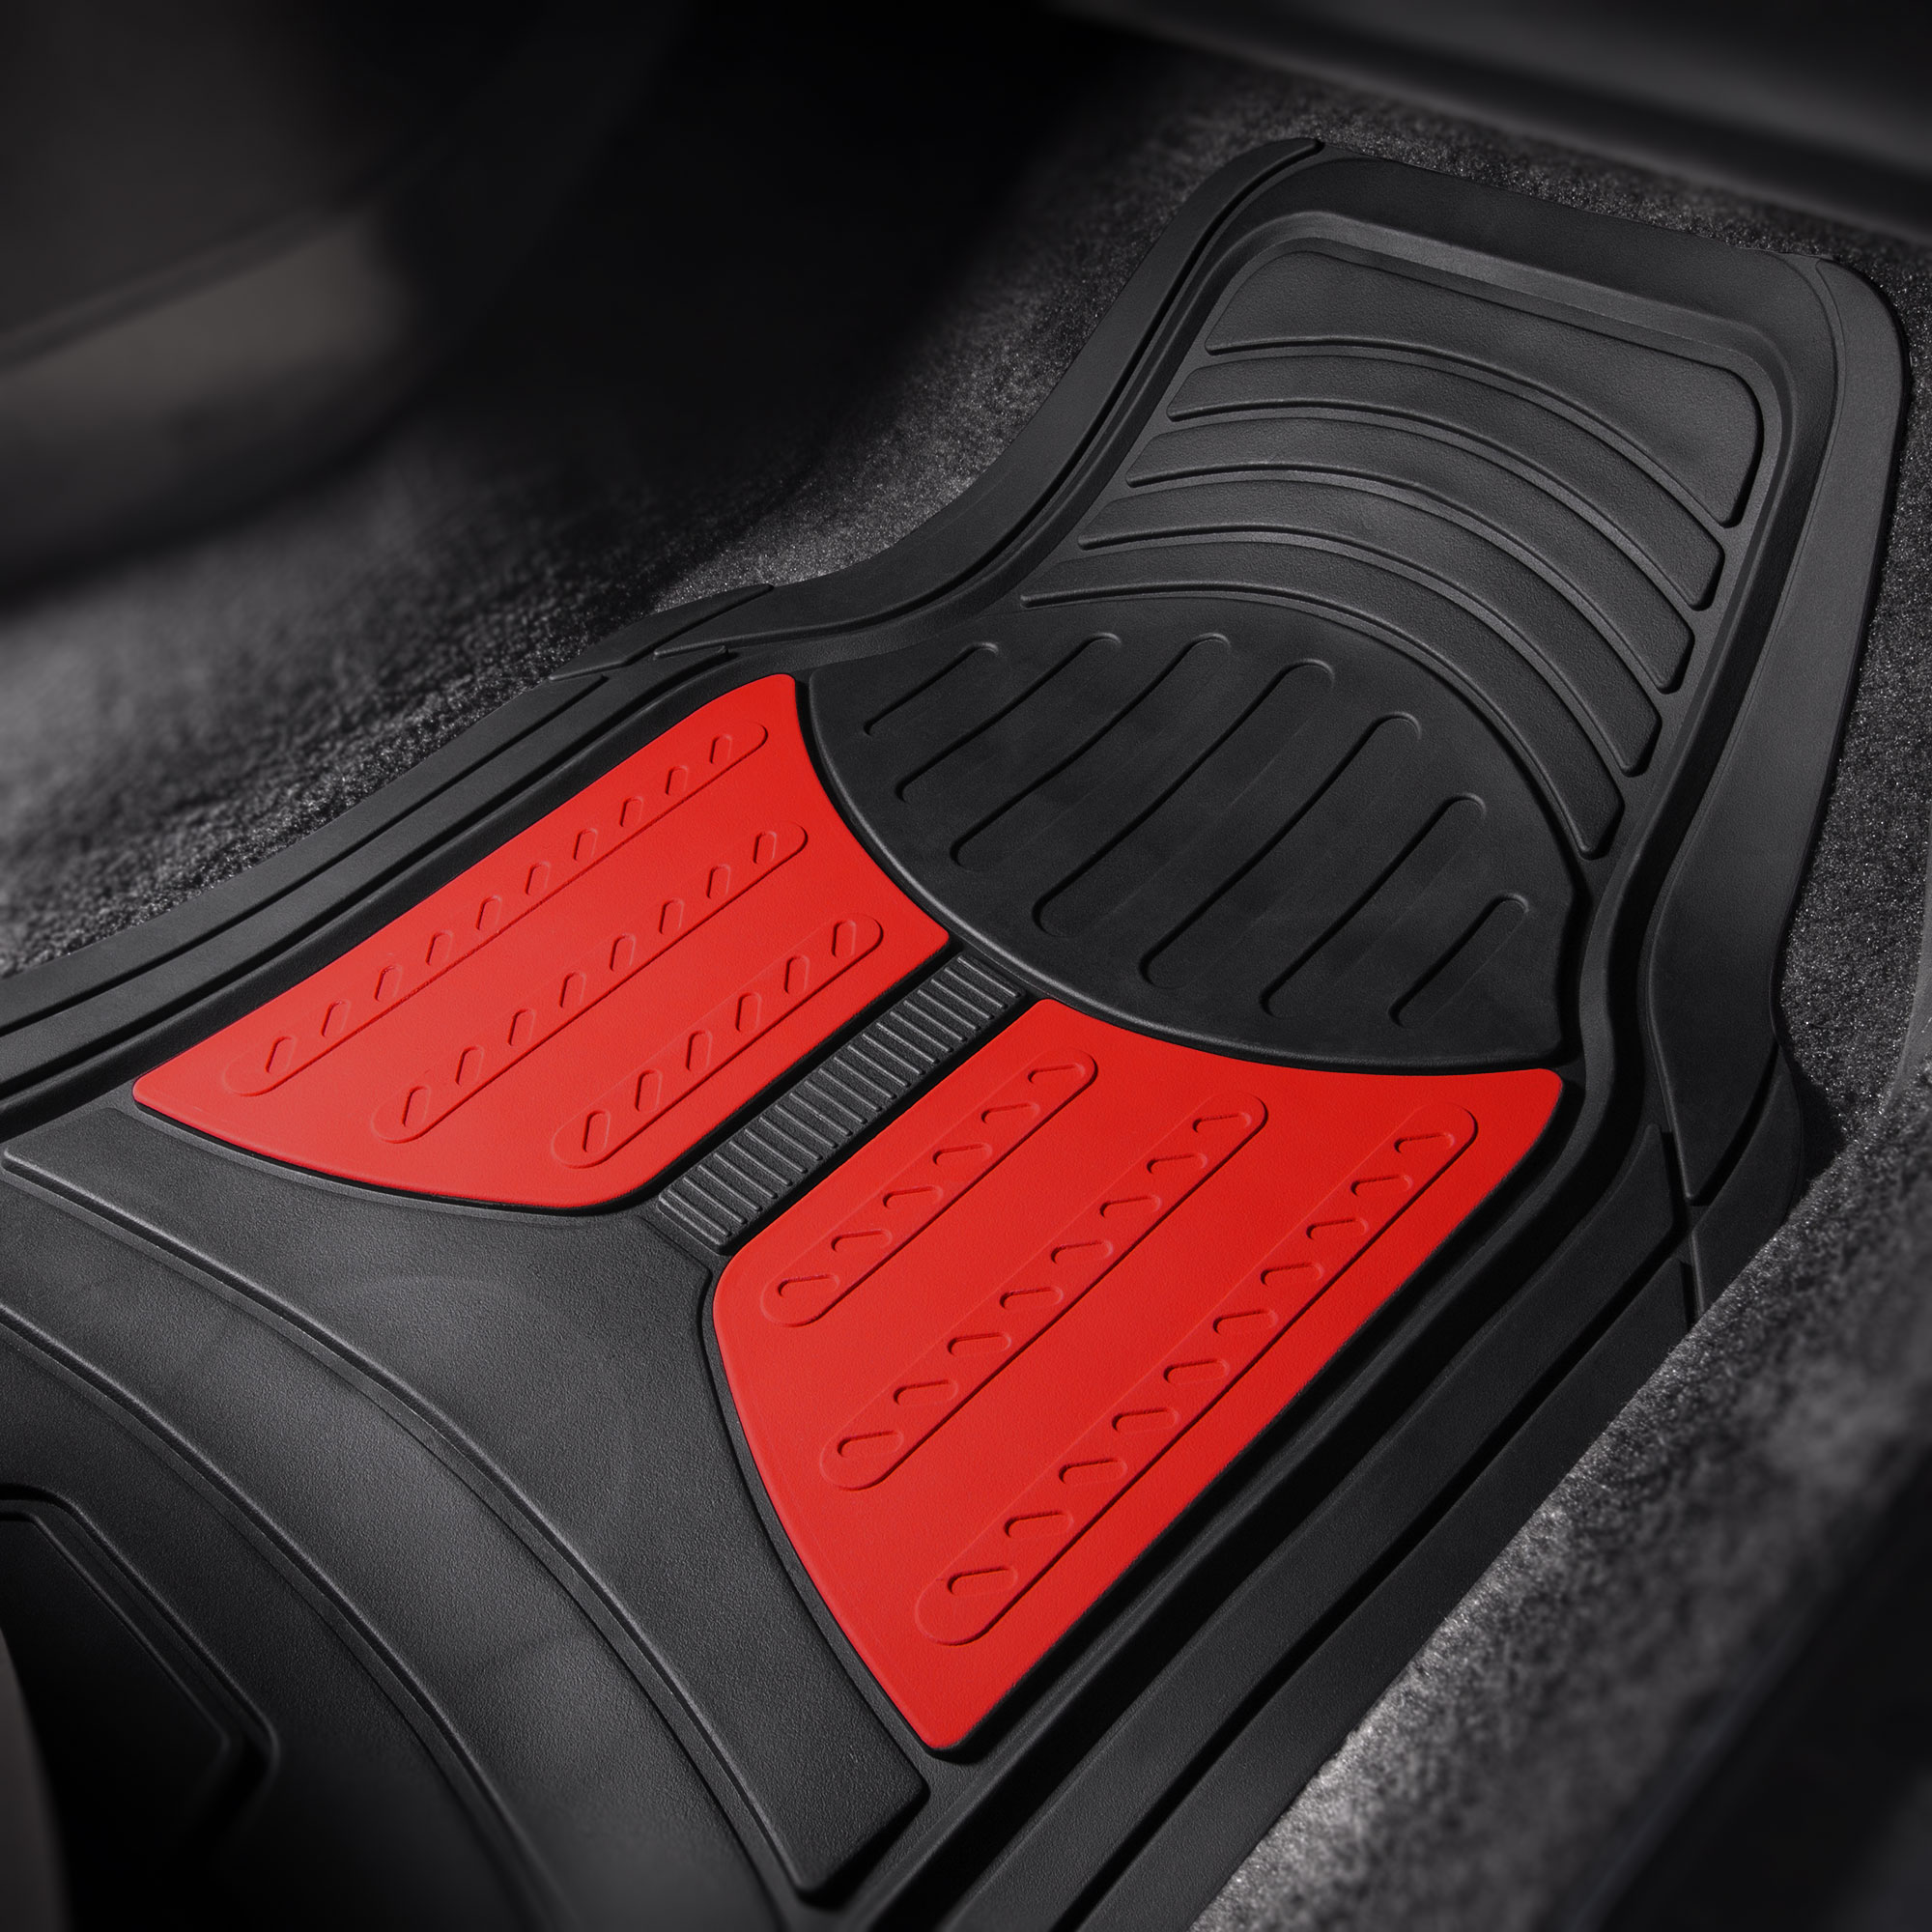 thumbnail 30 - Car Floor Mats for All Weather Rubber 2-Tone Design Heavy Duty - 4 Pc Set